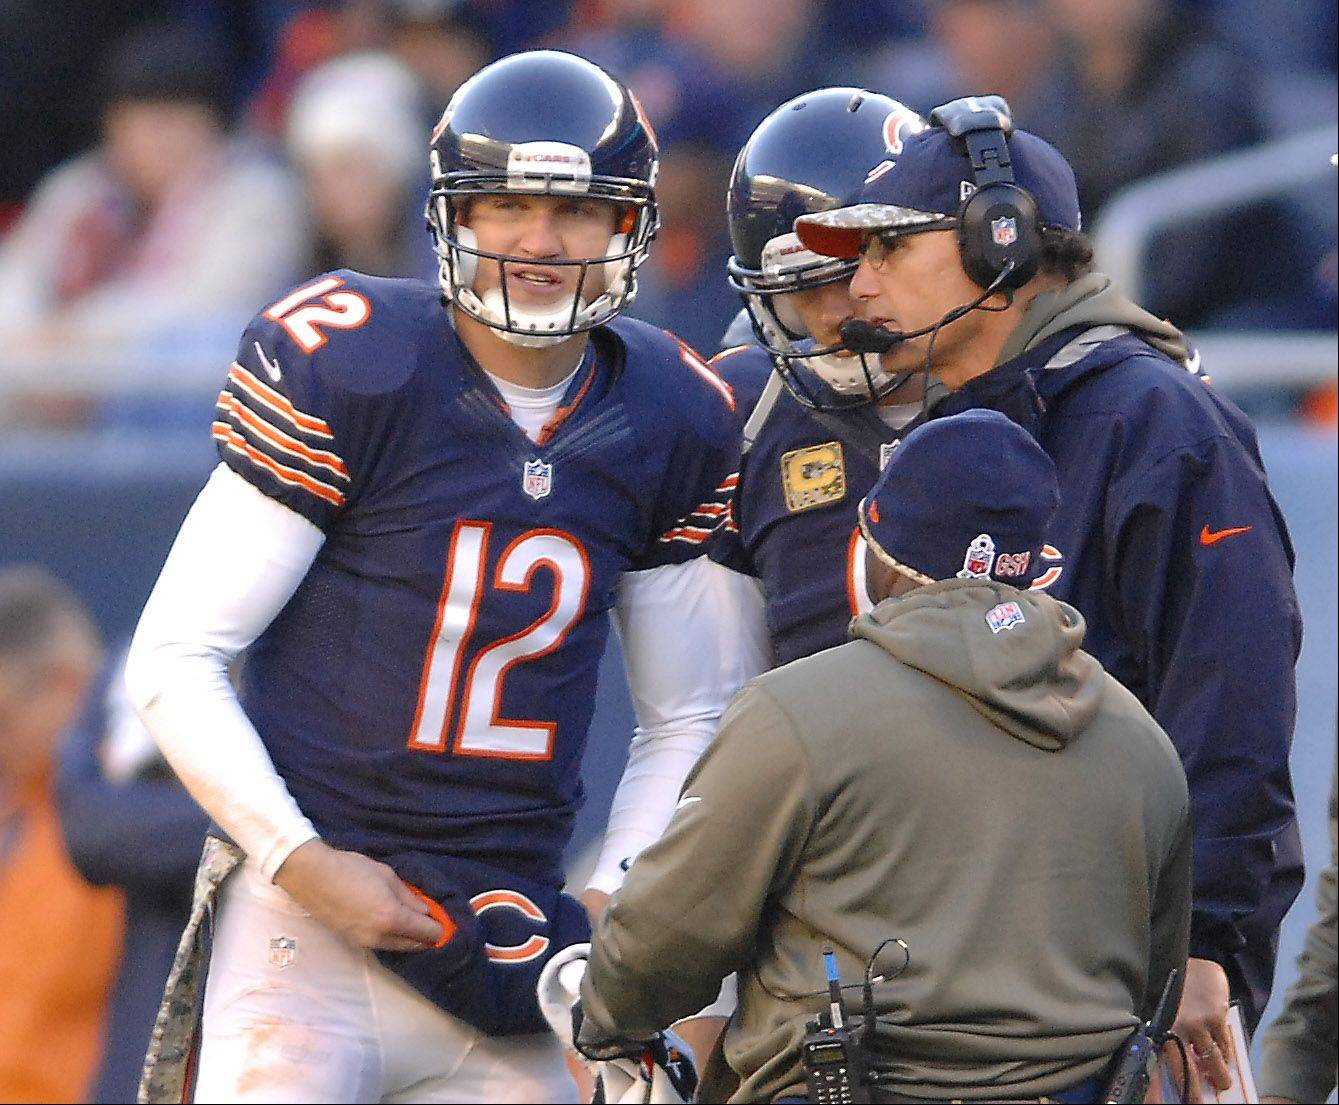 Bears quarterbacks Josh McCown talks with an injured Jay Cutler and head coach Marc Trestman near the end of the Bears' loss to the Lions last week.